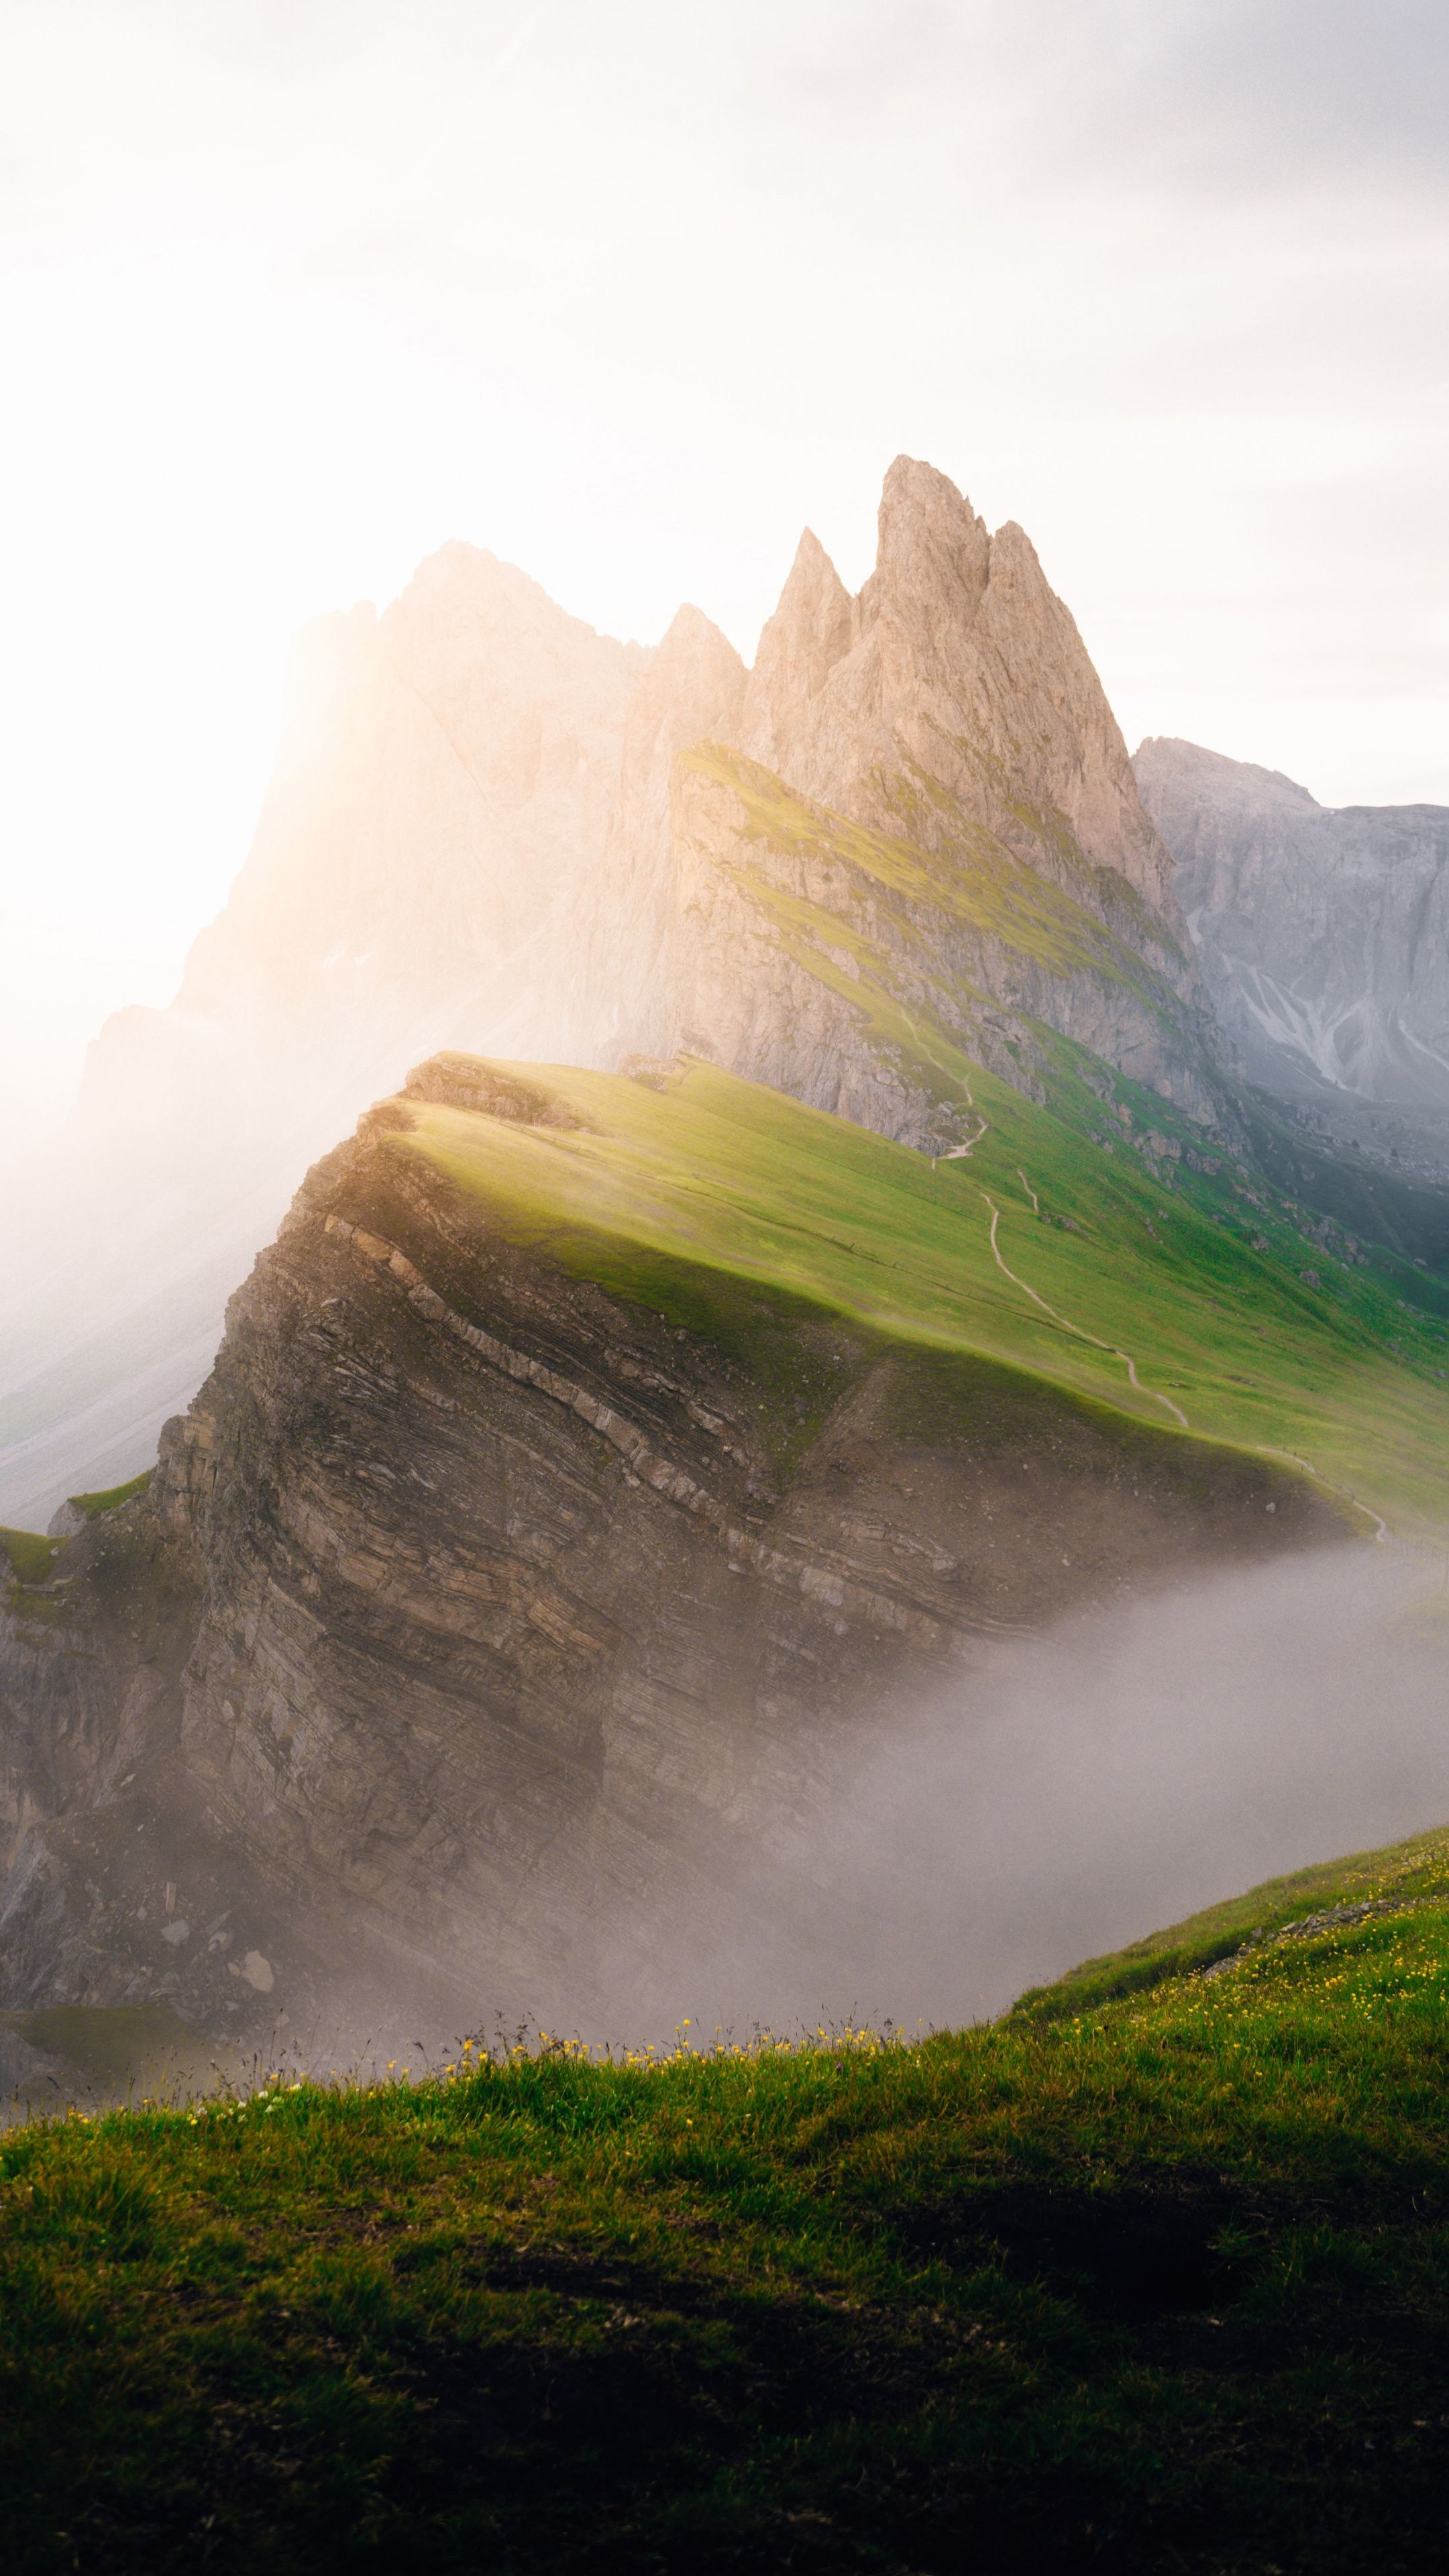 2160x3840 Mist Clouds Landscape Mountain Italy Wallpaper Nature Wallpaper Landscape Wallpaper